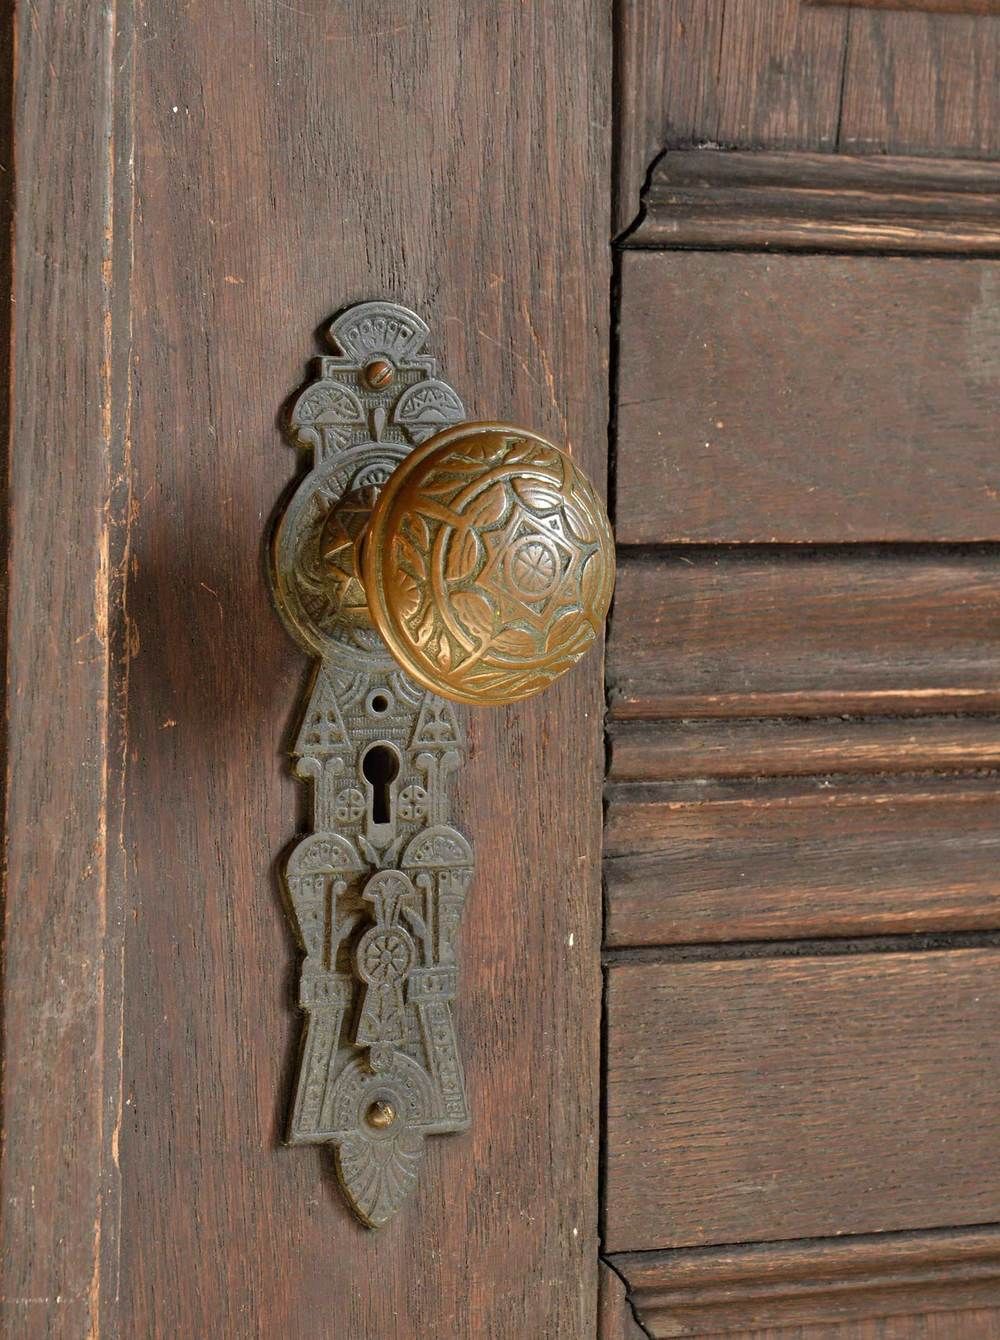 46019-double-doors-with-etched-glass-doorknob.jpg